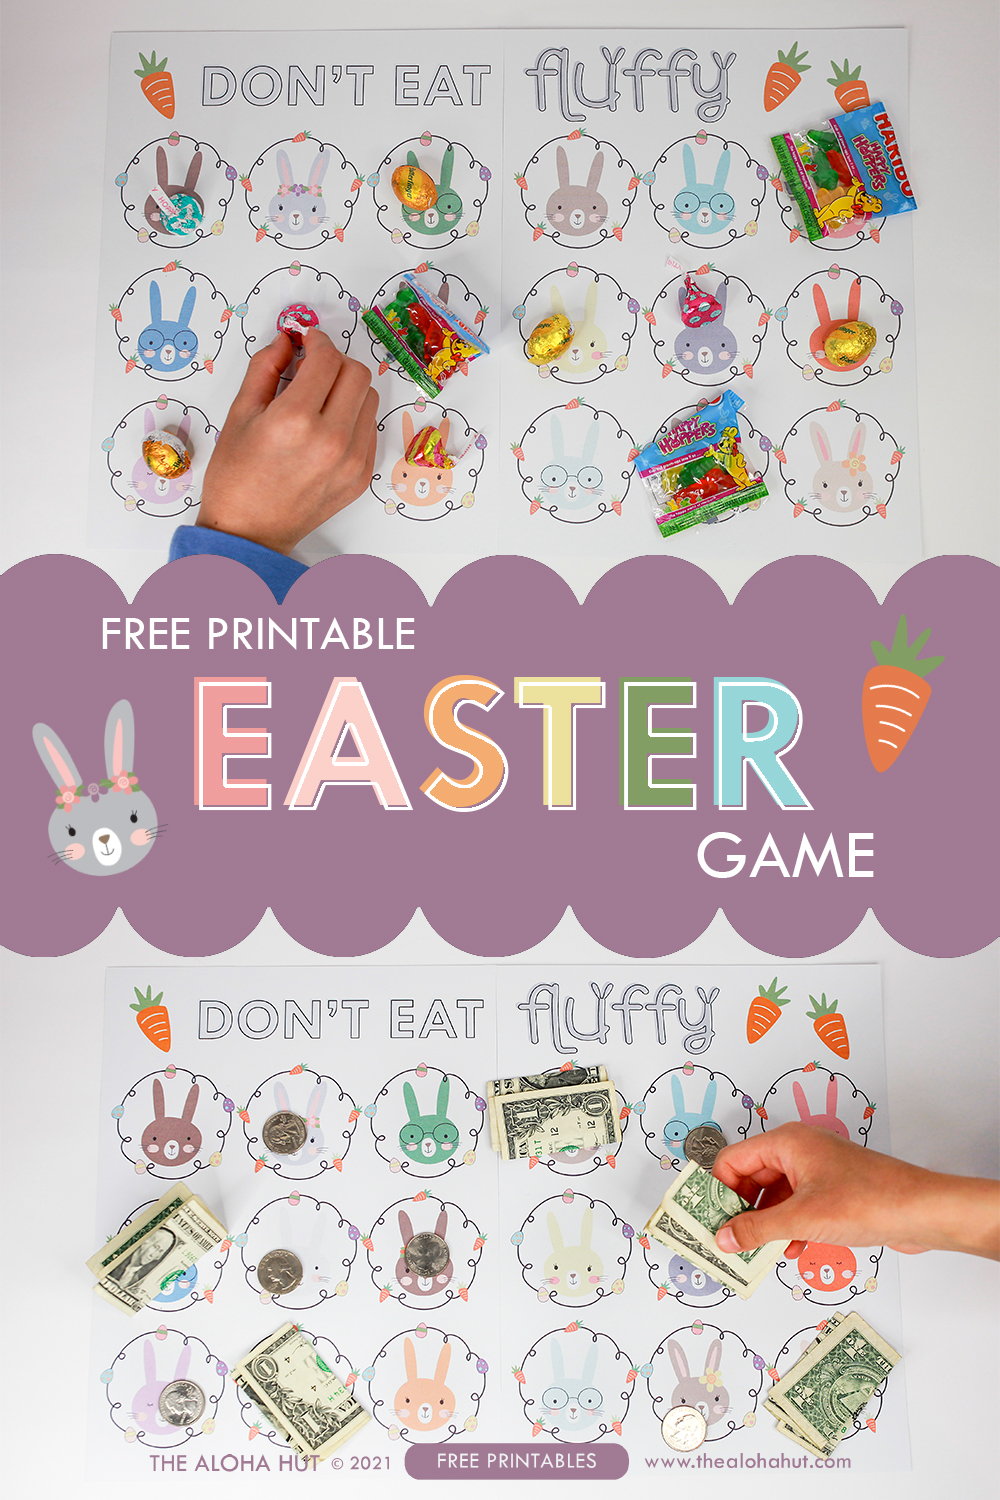 Don't Eat Fluffy free printable Easter Game by the Aloha Hut